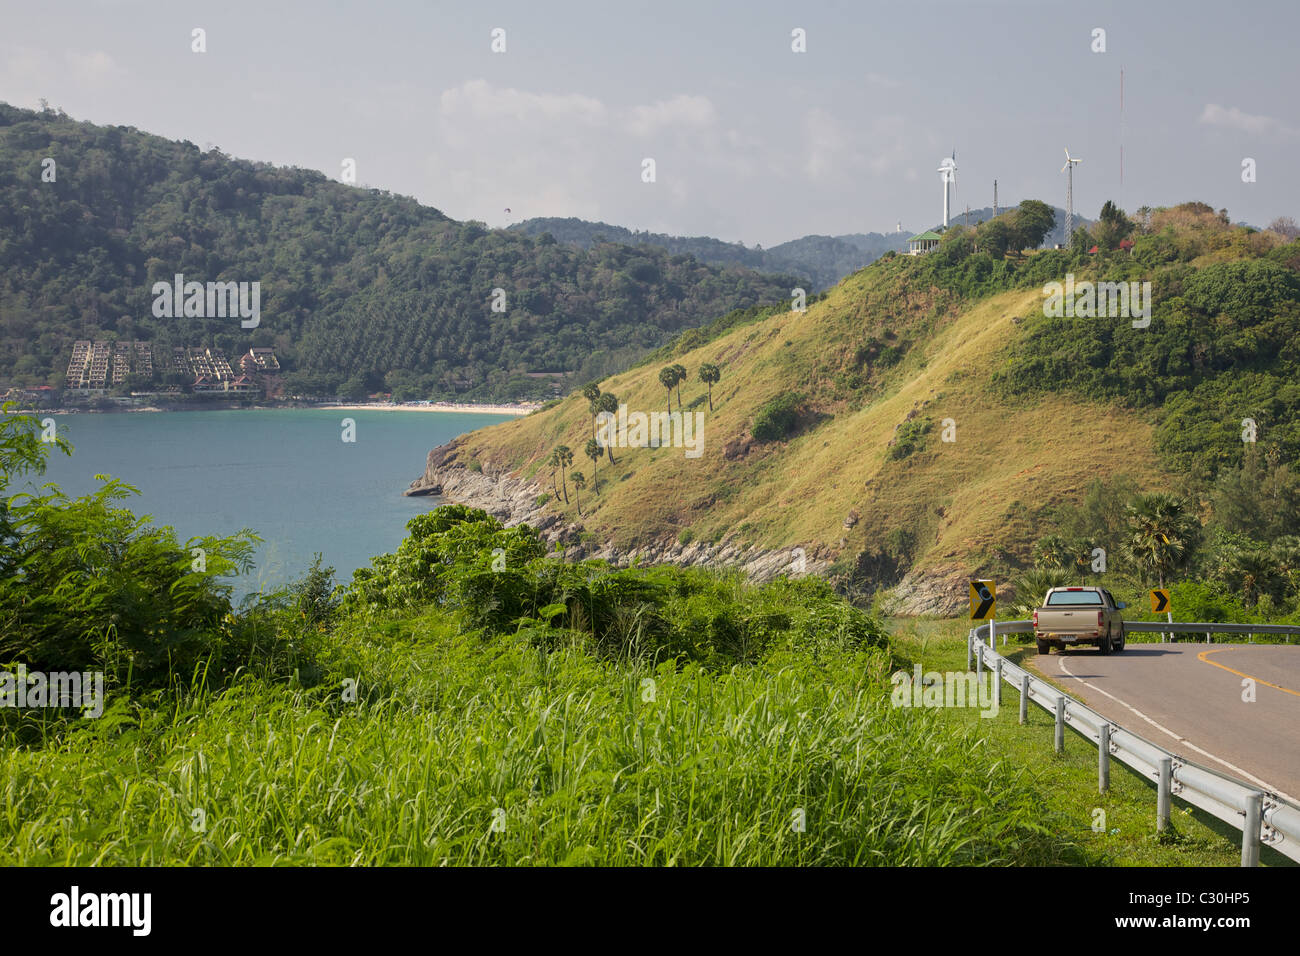 A high shot looking down onto Nai Harn beach with the Royal Yatch club and wind turbines on the hill, Phuket, Thailand - Stock Image